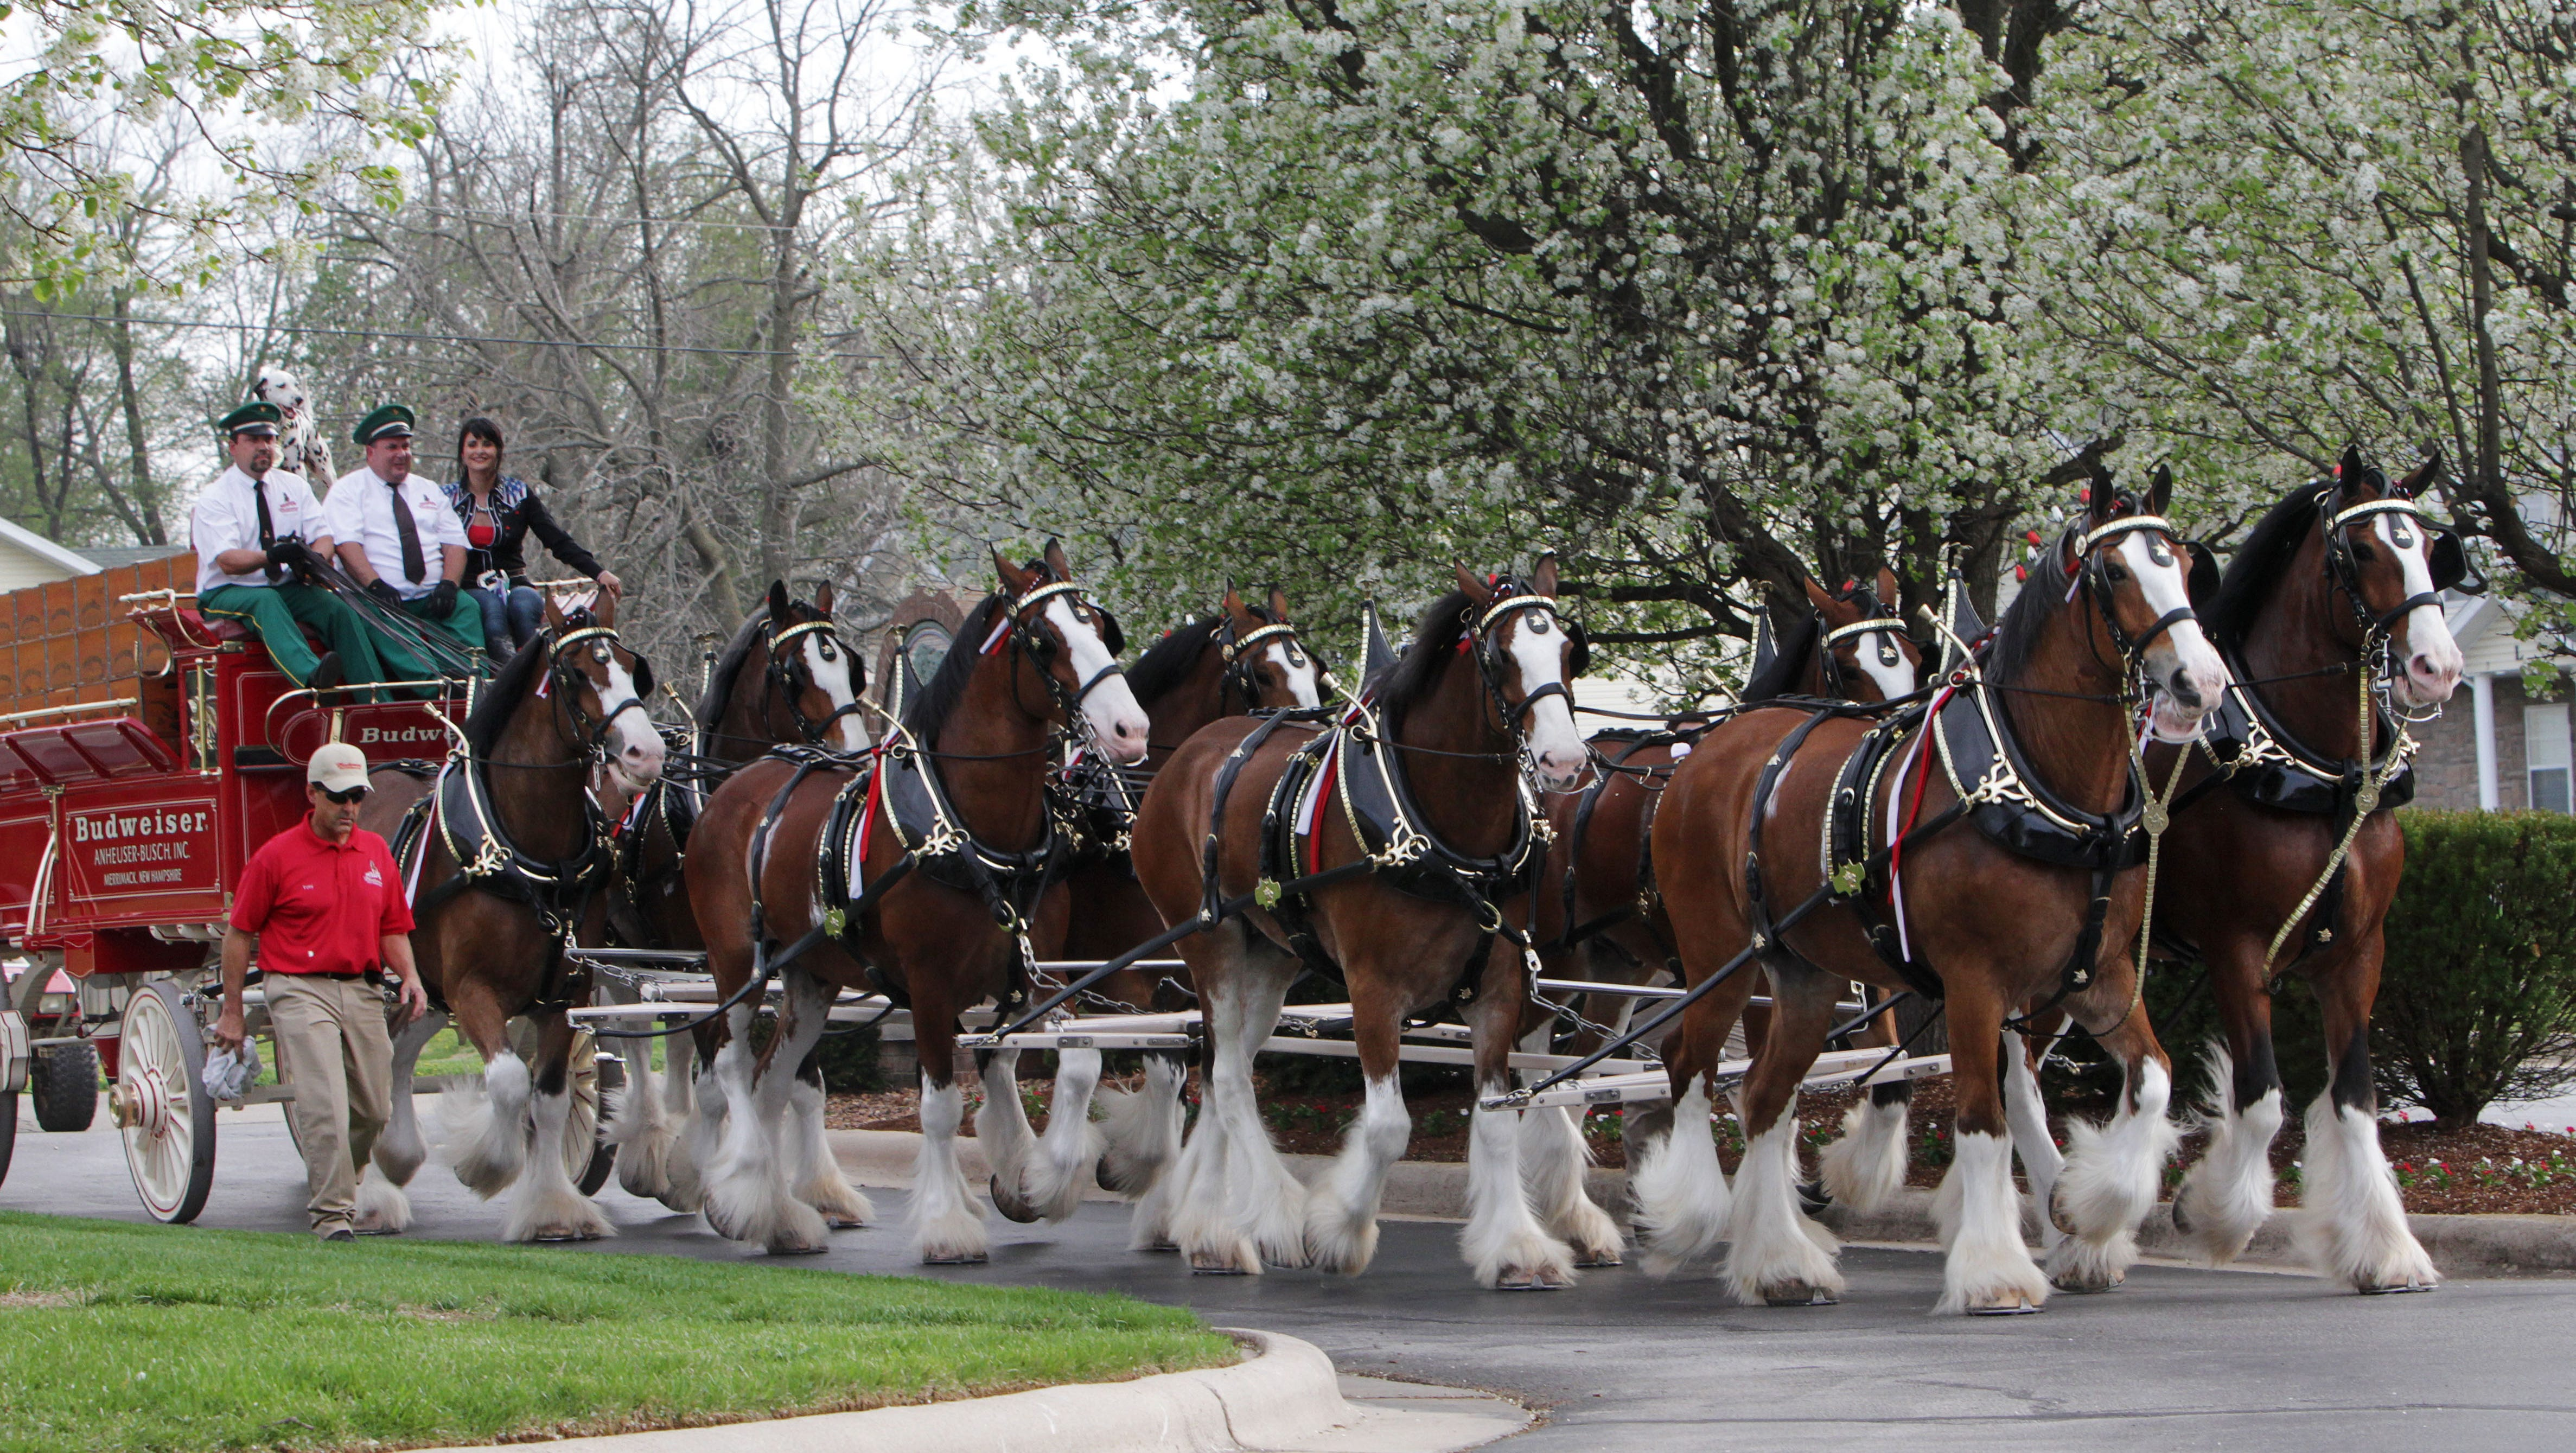 Home Of Clydesdale Horses Popular Tourist Draw